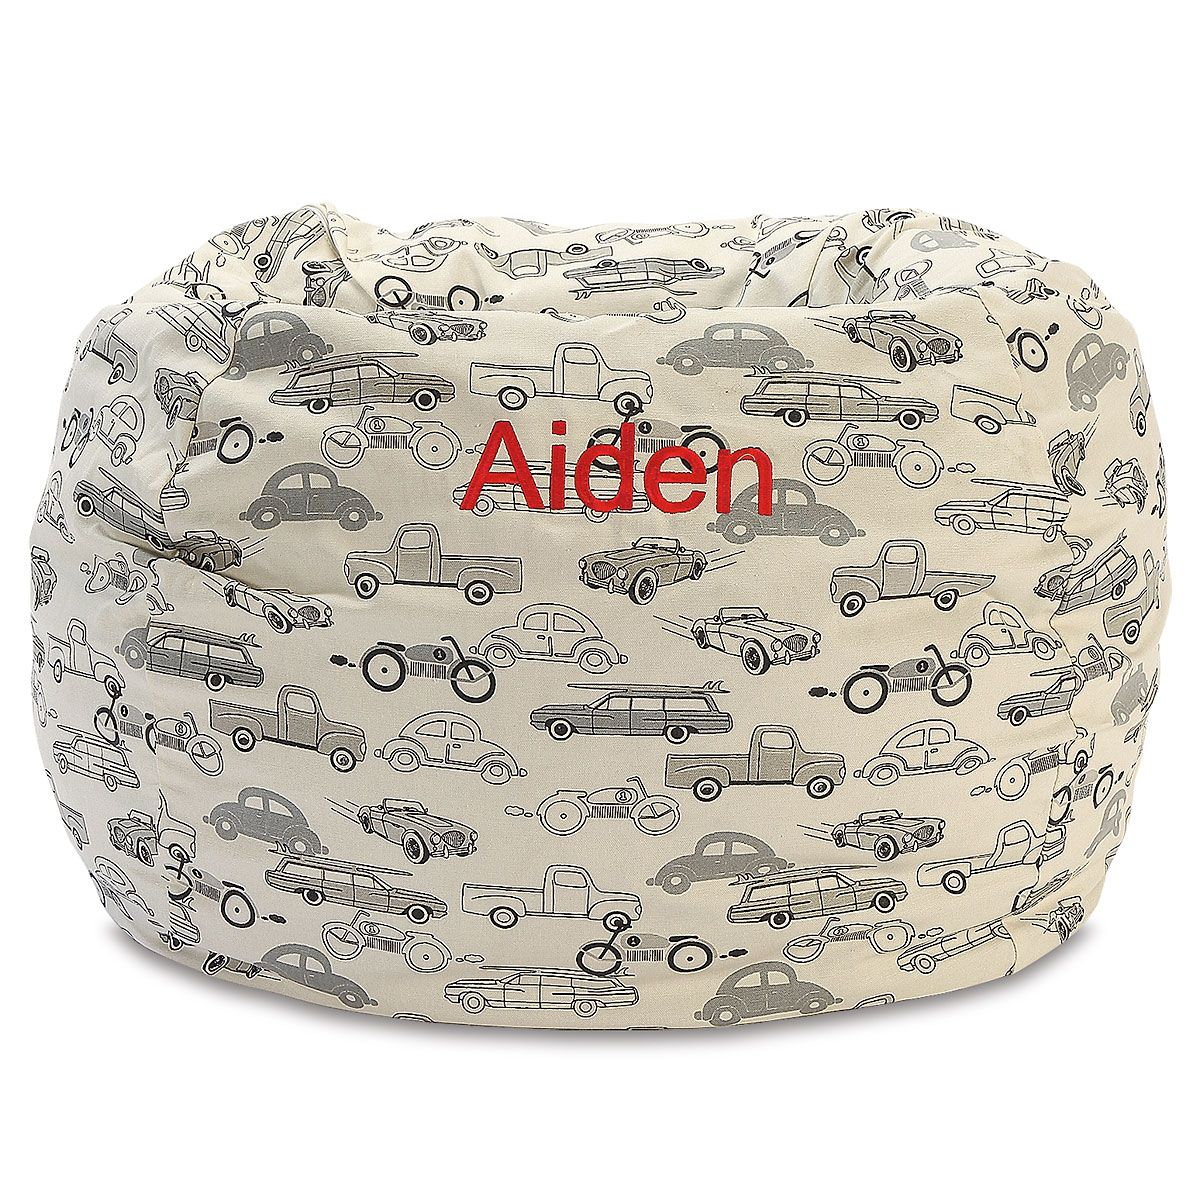 Retro Rides Personalized Bean Bag Chair